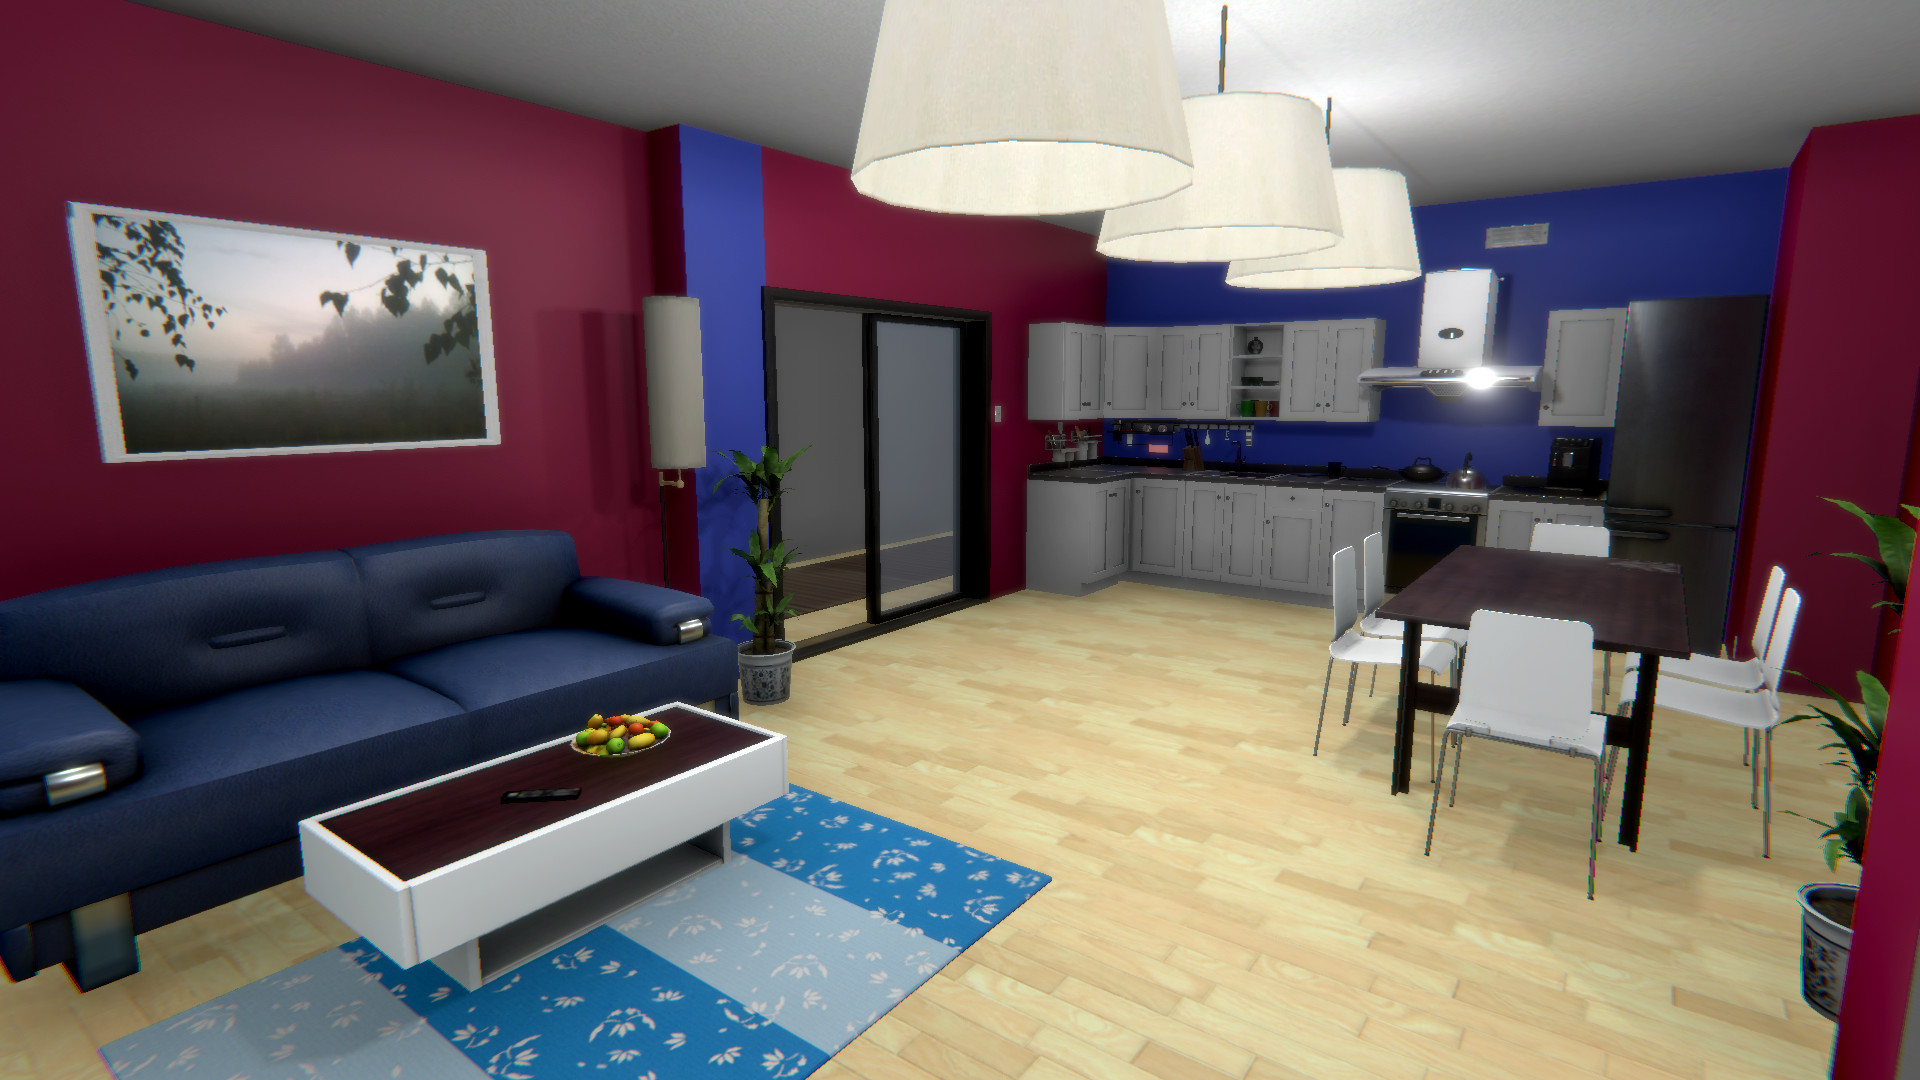 Save 30% on House Flipper on Steam